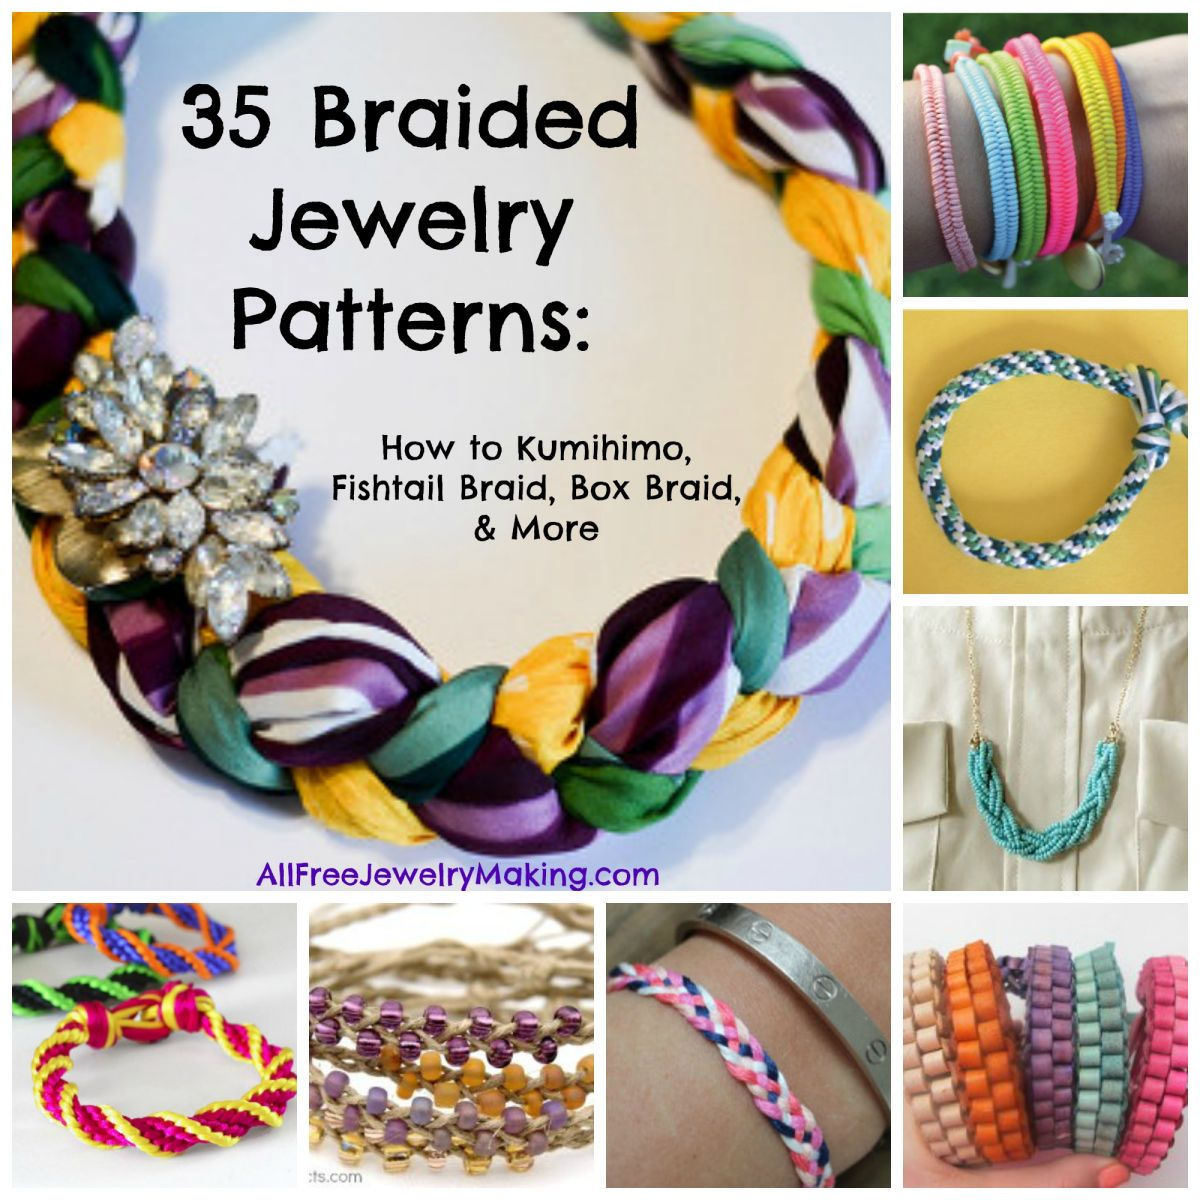 35 Braided Jewelry Patterns: How to Kumihimo, Fishtail Braid, Box Braid, and More